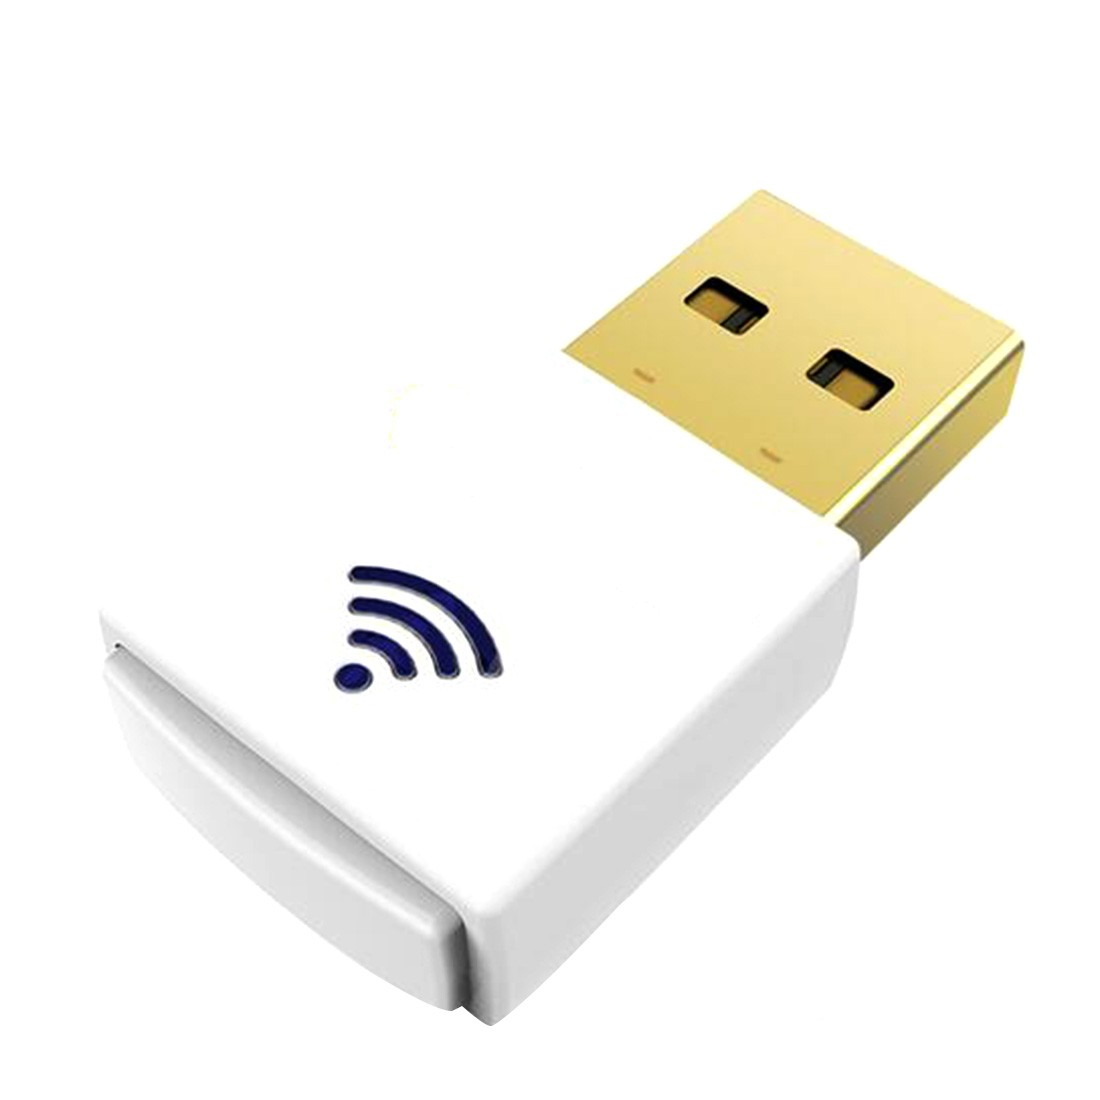 online get cheap networking card designs com alibaba 2016 new design convenient wifi adapter portable 3